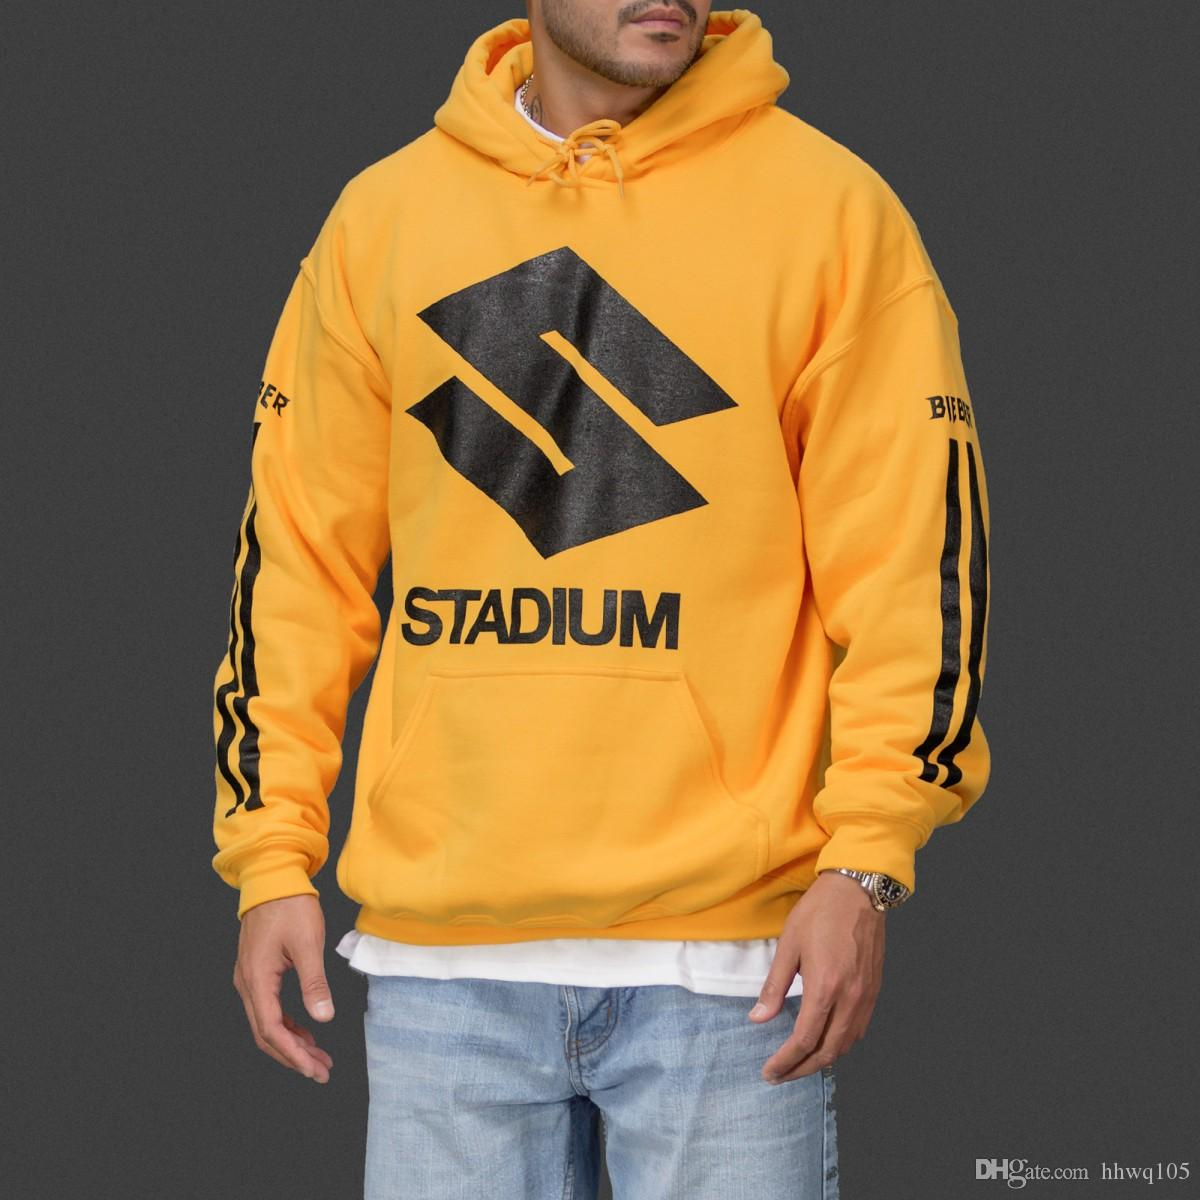 super popular 219e1 7995f Justin Bieber Zweck Tour Stadium Hoodie Männer Frauen Gelb Pullover Fleece  Hoodie Mode Winter Skateboards Sport Sweatshirt YYG1015